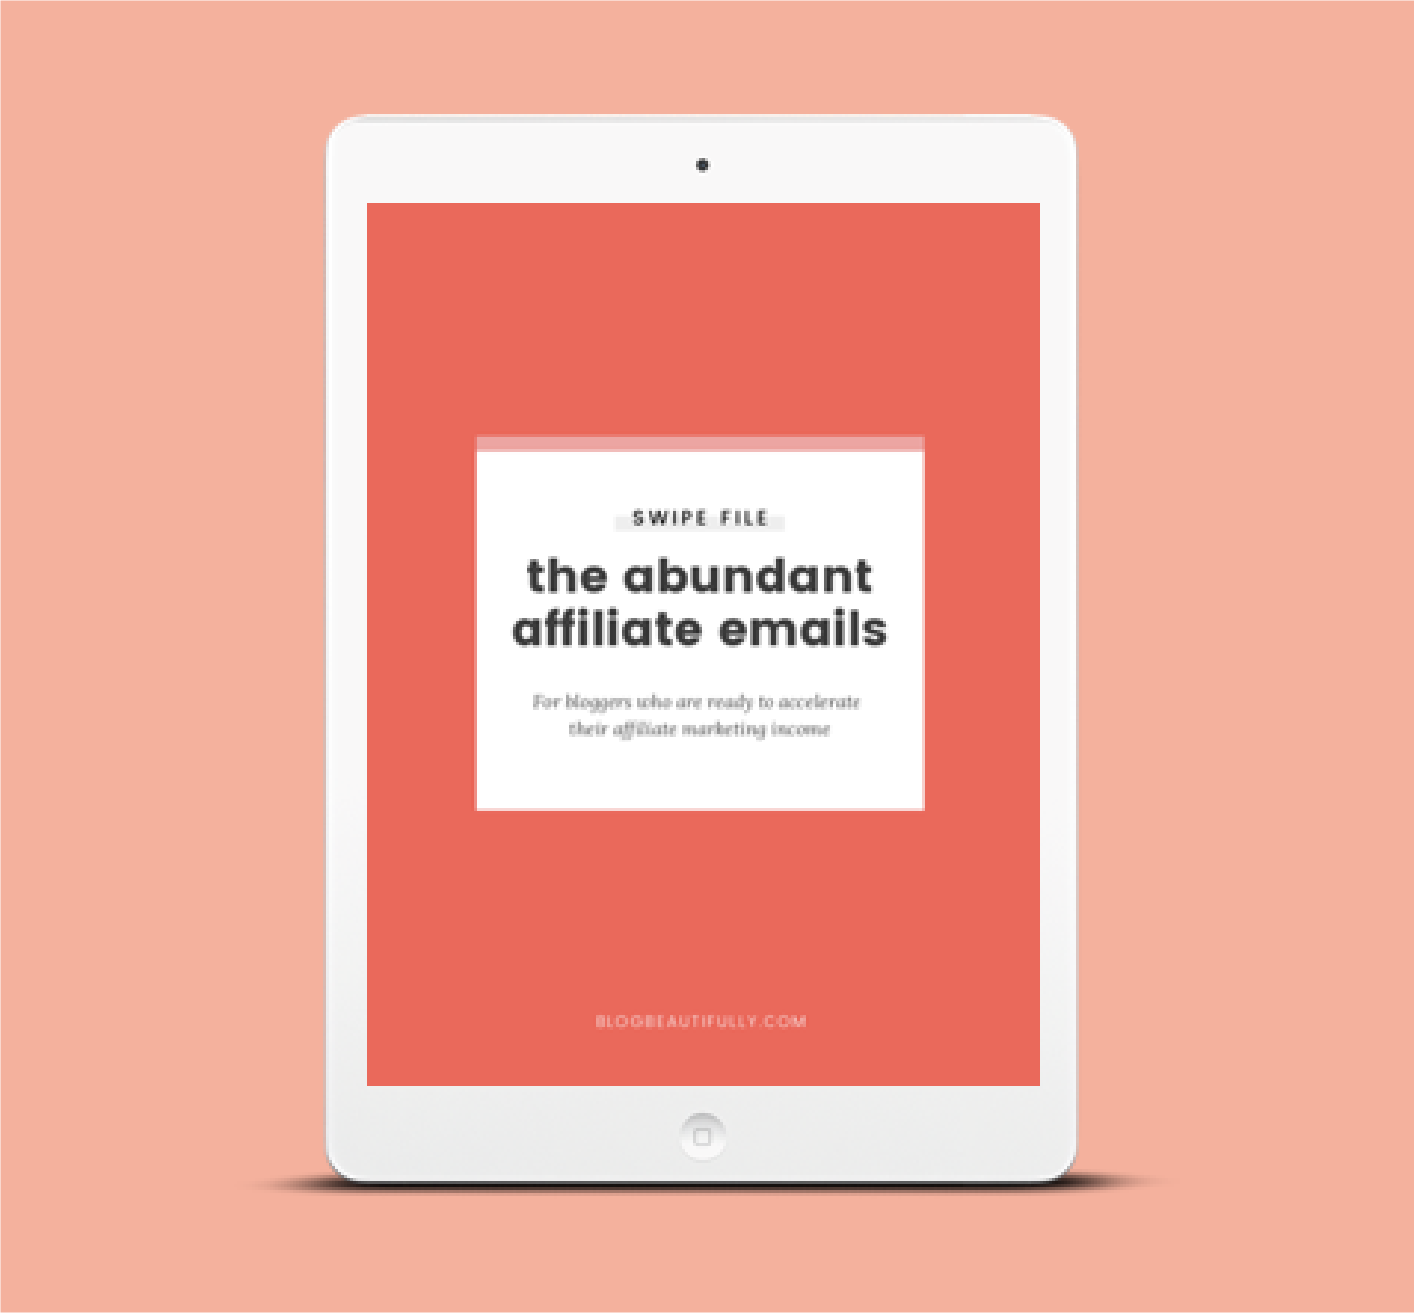 The Abundant Affiliate Swipe File - Get the exact five emails I sent to my mailing list that brought in over $4,000 in affiliate income in just one week.